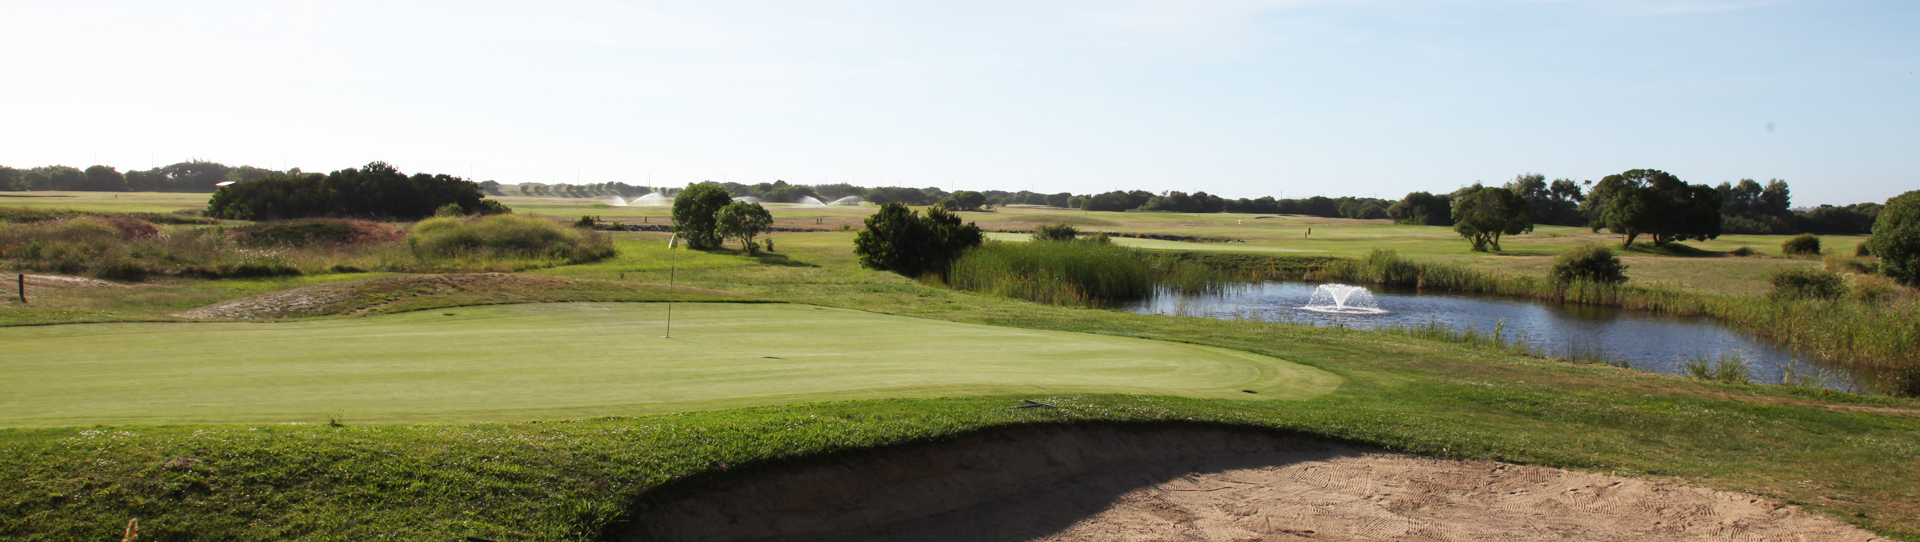 Oporto Golf Club - Photo 1